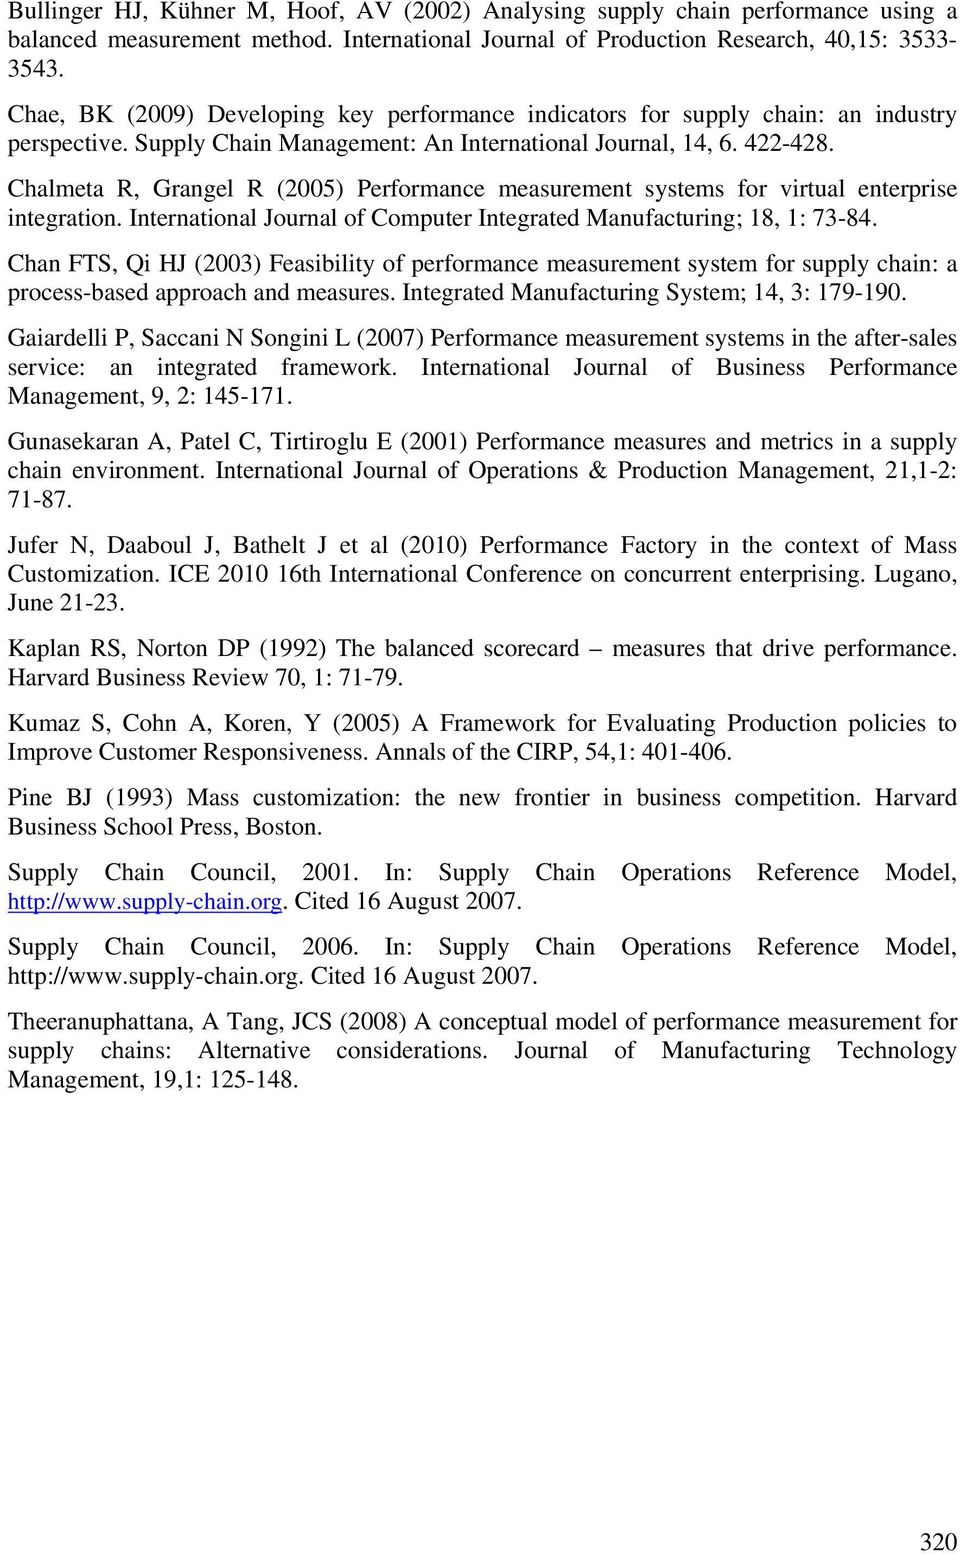 Chalmeta R, Grangel R (2005) Performance measurement systems for virtual enterprise integration. International Journal of Computer Integrated Manufacturing; 18, 1: 73-84.